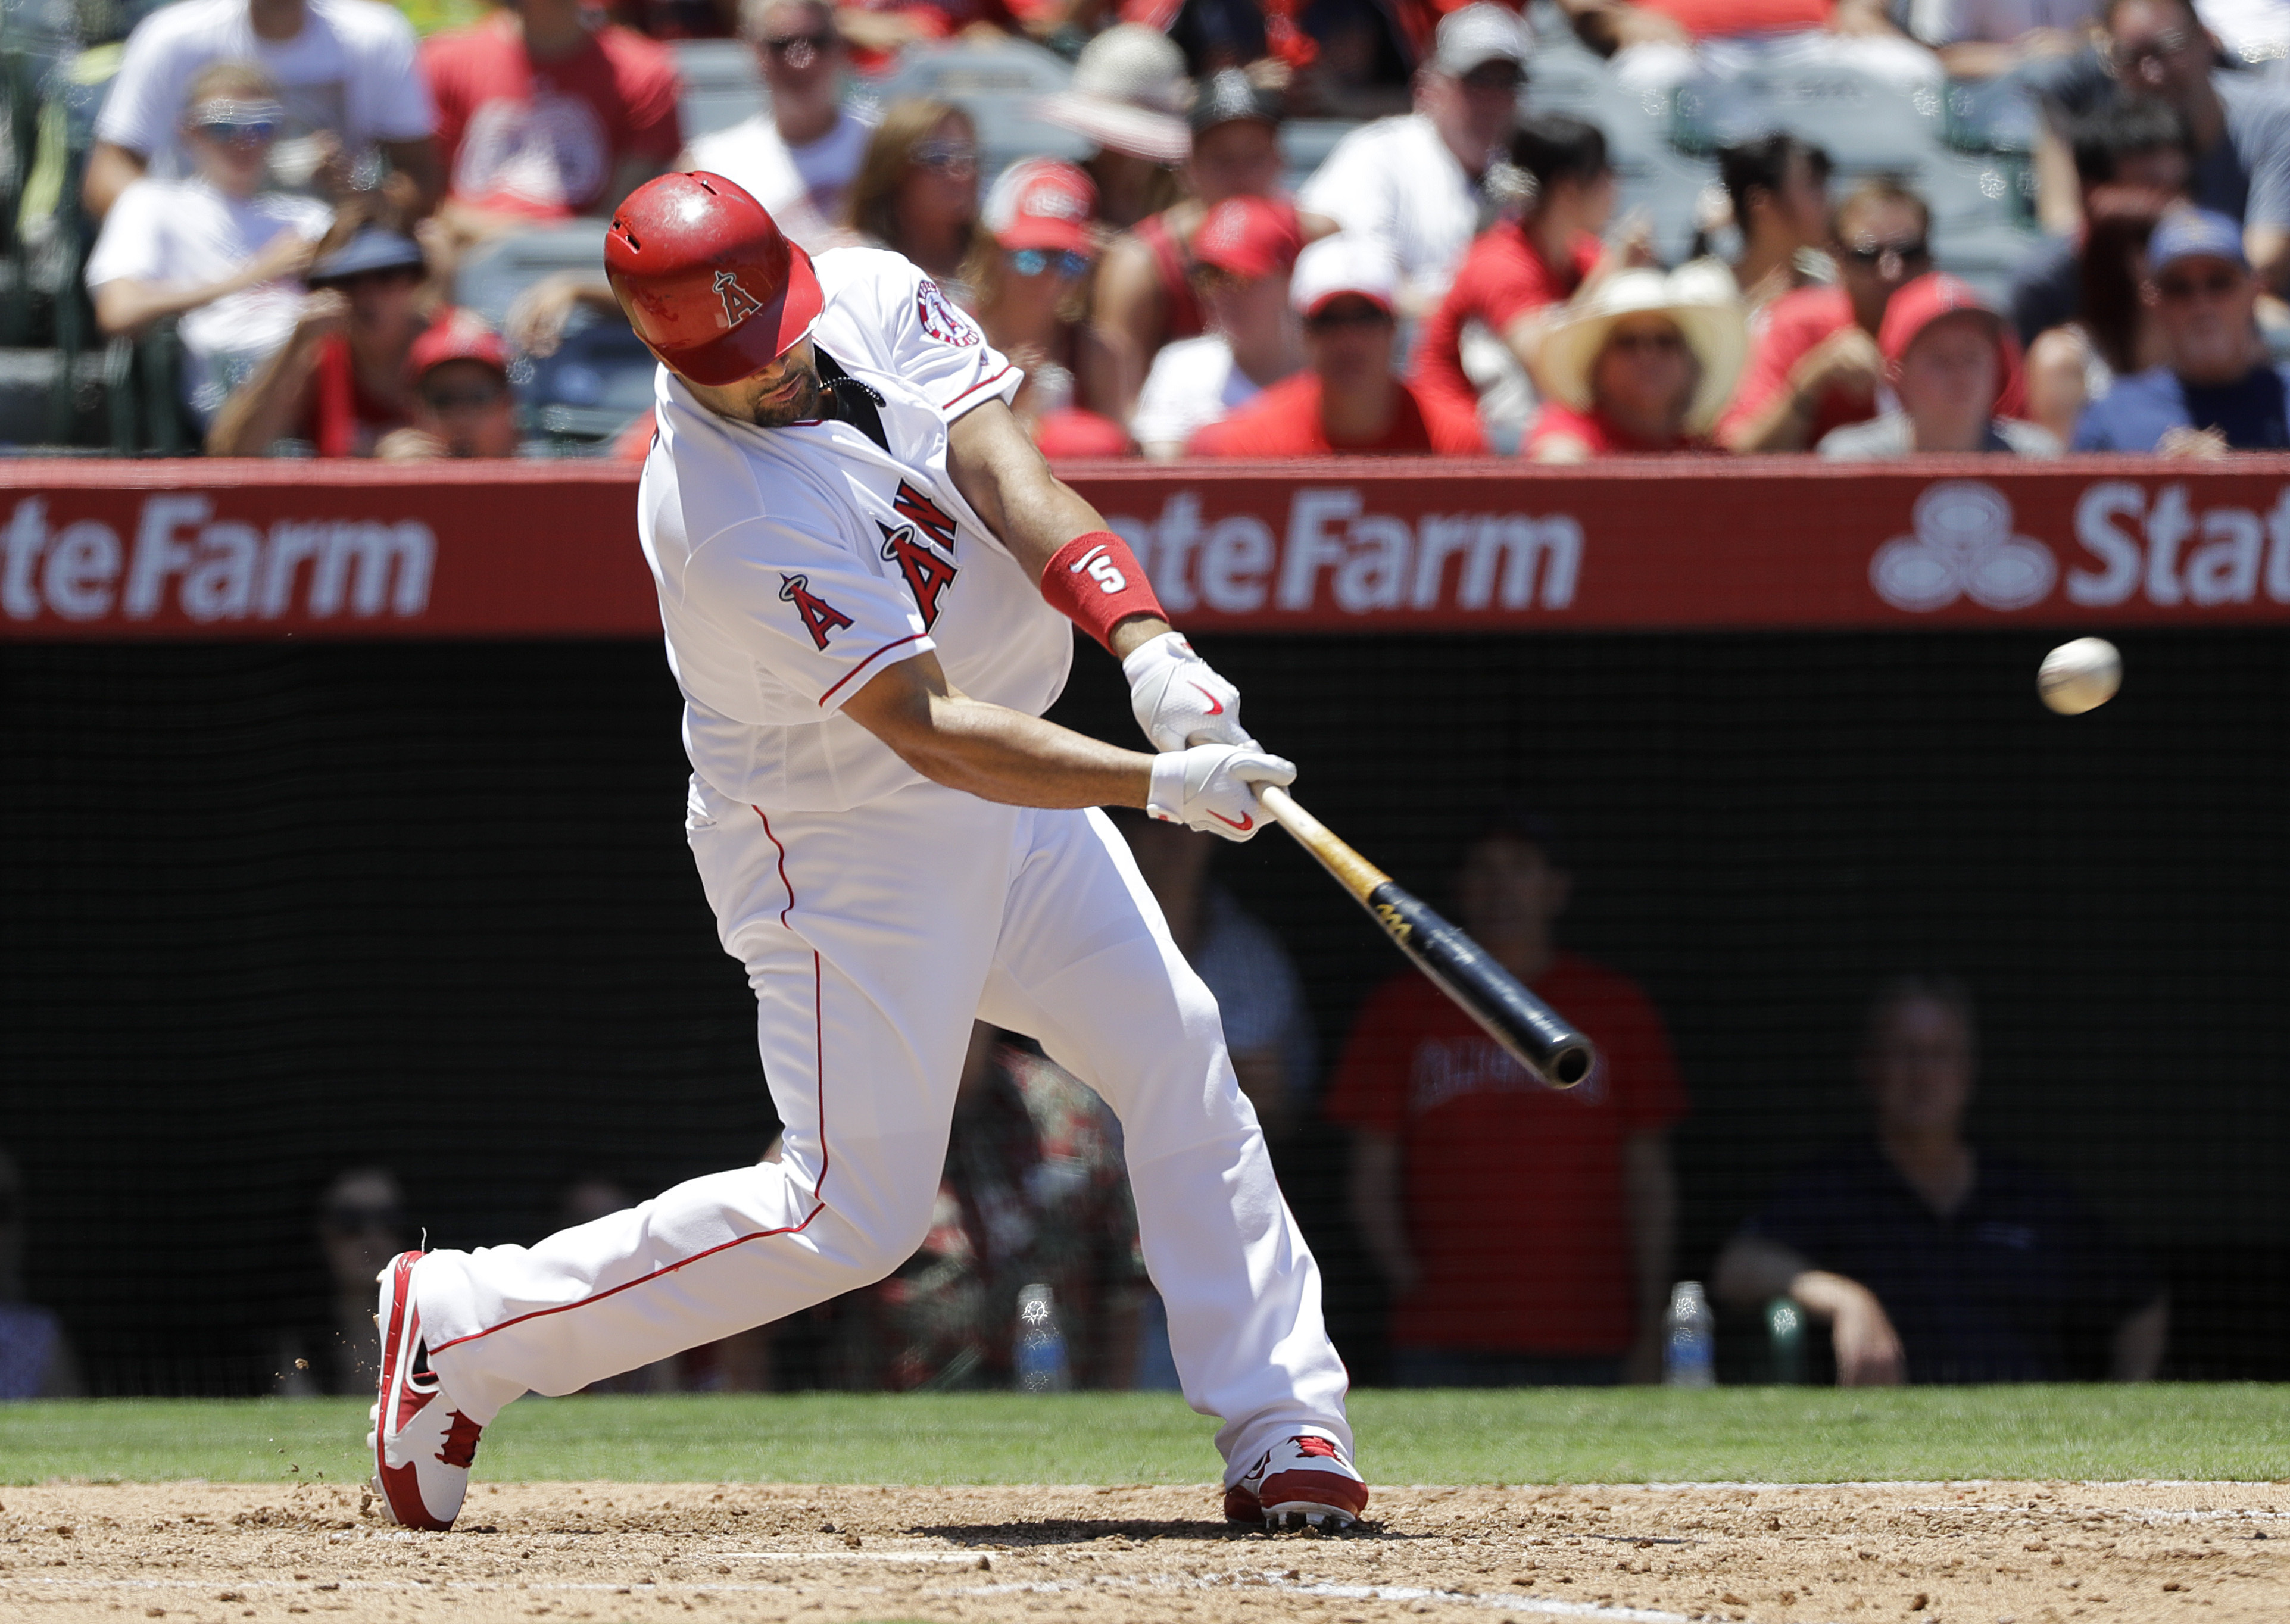 Los Angeles Angels' Albert Pujols hits a two-run home run, his second of the game, during the fourth inning of a baseball game against the Chicago White Sox, Sunday, July 17, 2016, in Anaheim, Calif. (AP Photo/Jae C. Hong)